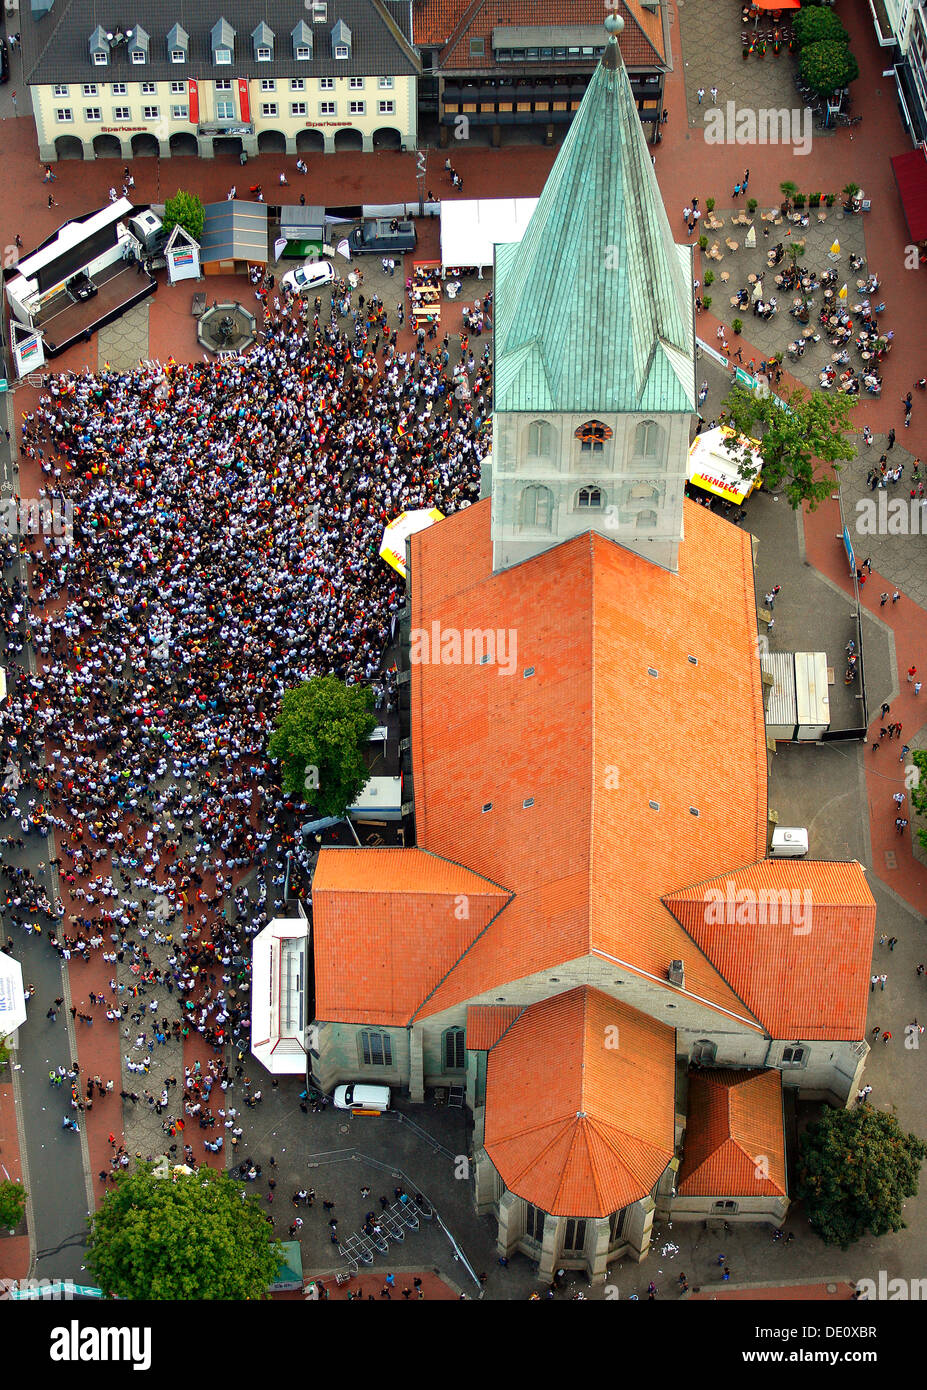 Aerial picture, public screening, Football World Cup 2010, the match Germany vs Australia 4-0 being shown in front of St. Paul's - Stock Image